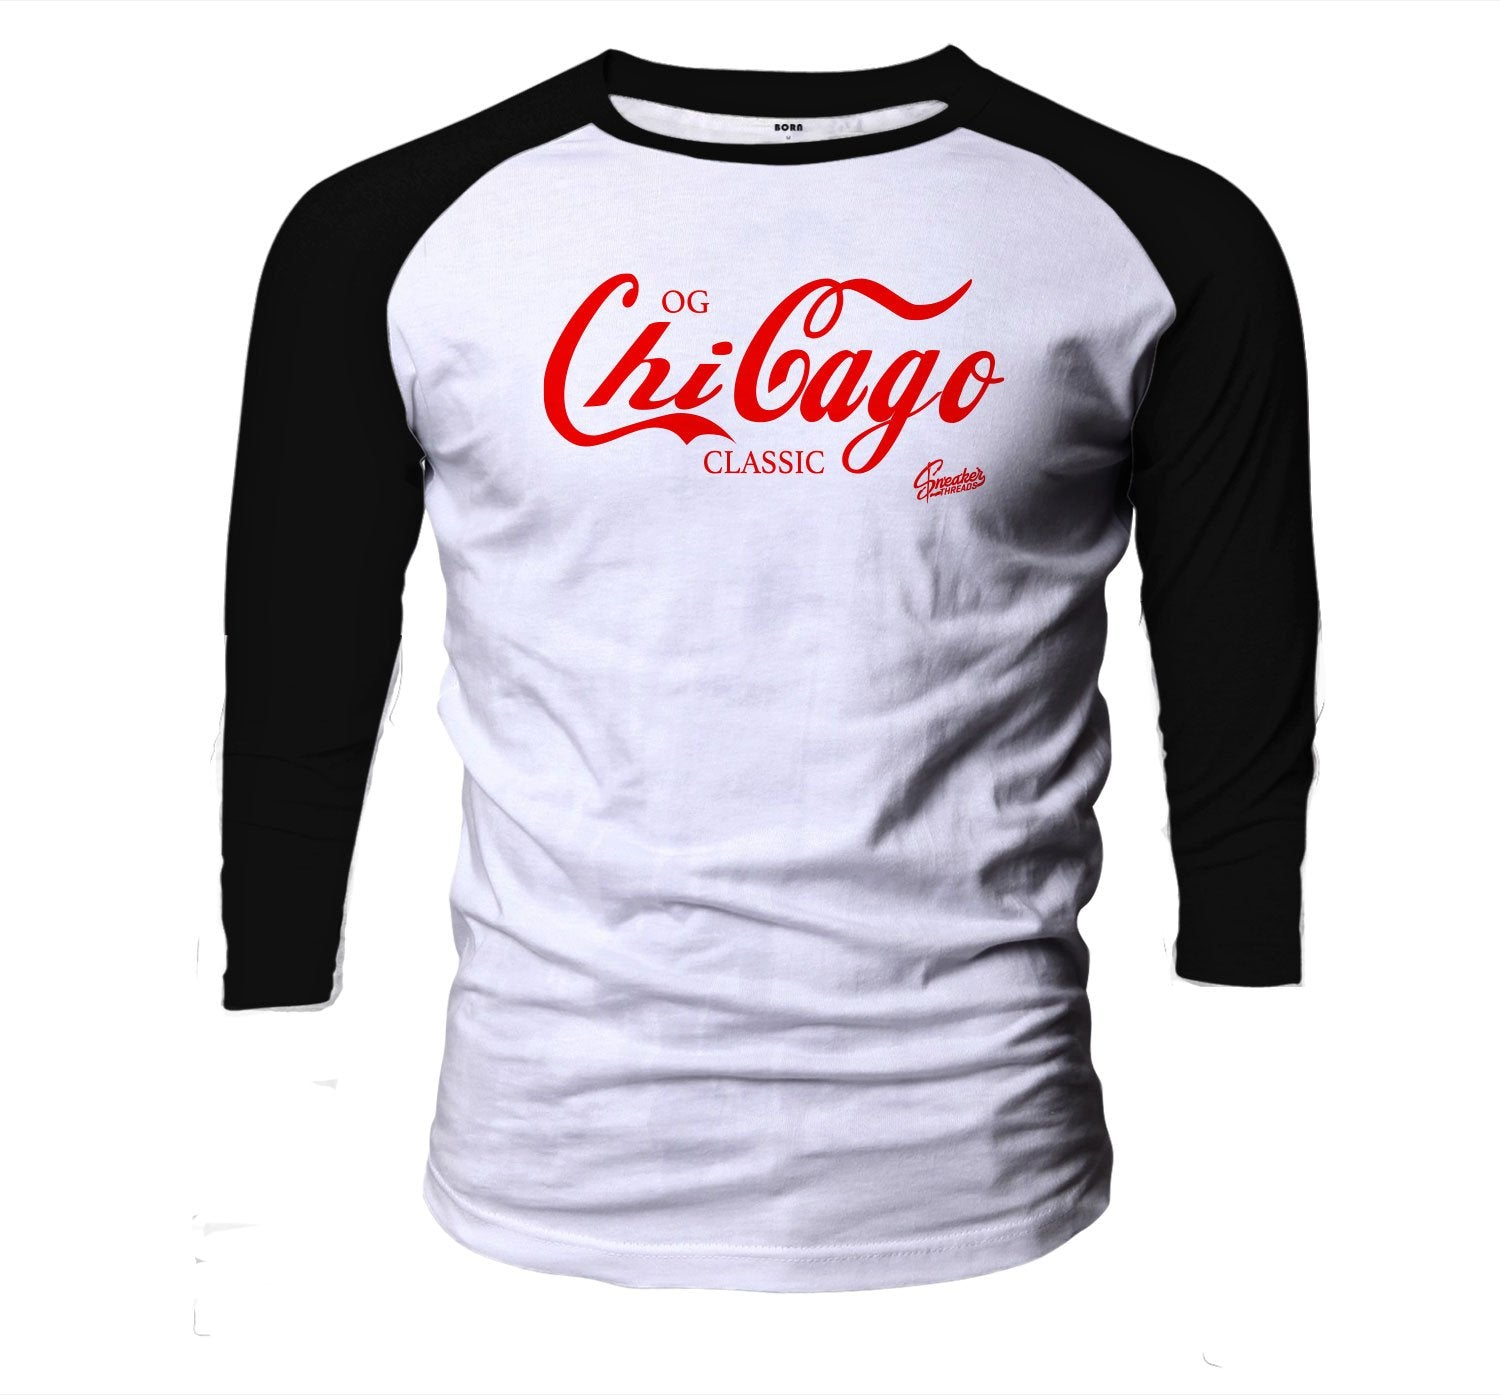 Raglan shirt collection for men designed to match the Jordan 3 red cement sneaker collection